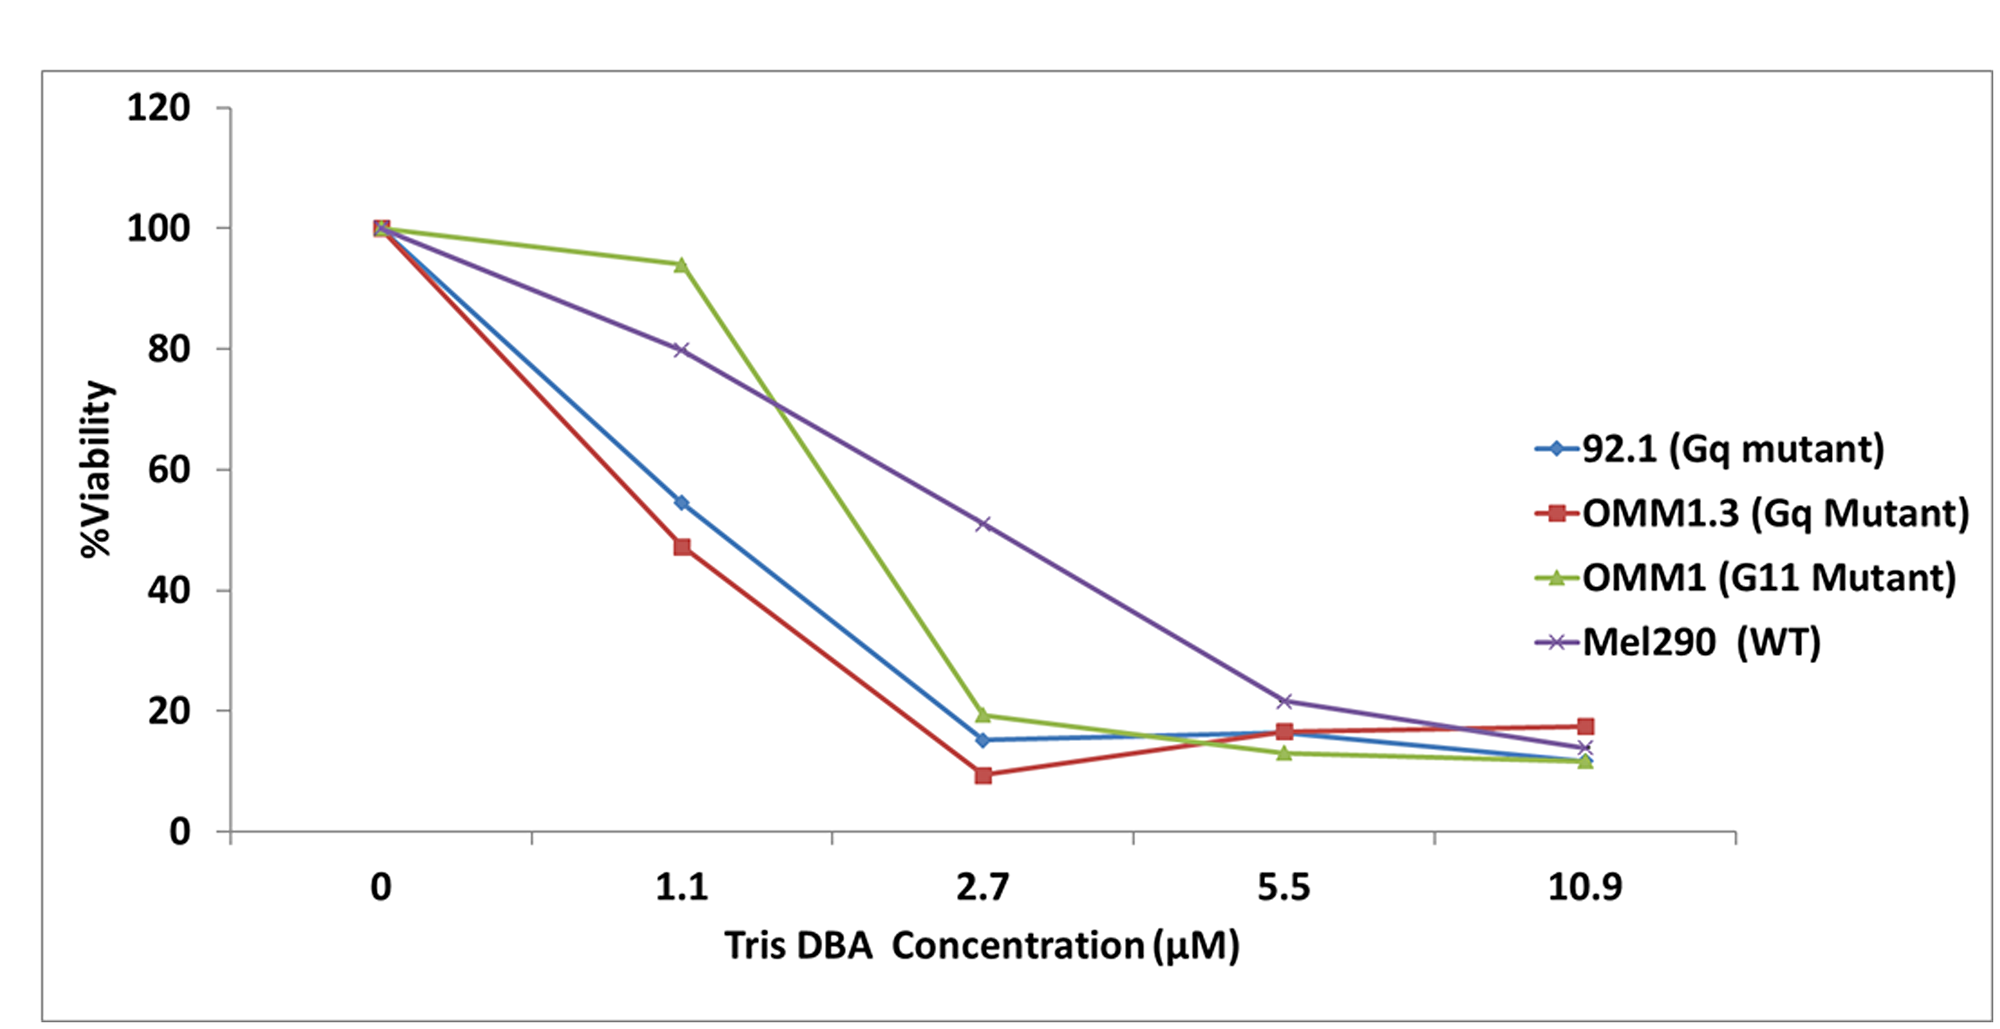 Tris DBA reduces cell viability in GNAQ/GNA11 mutant cell lines.